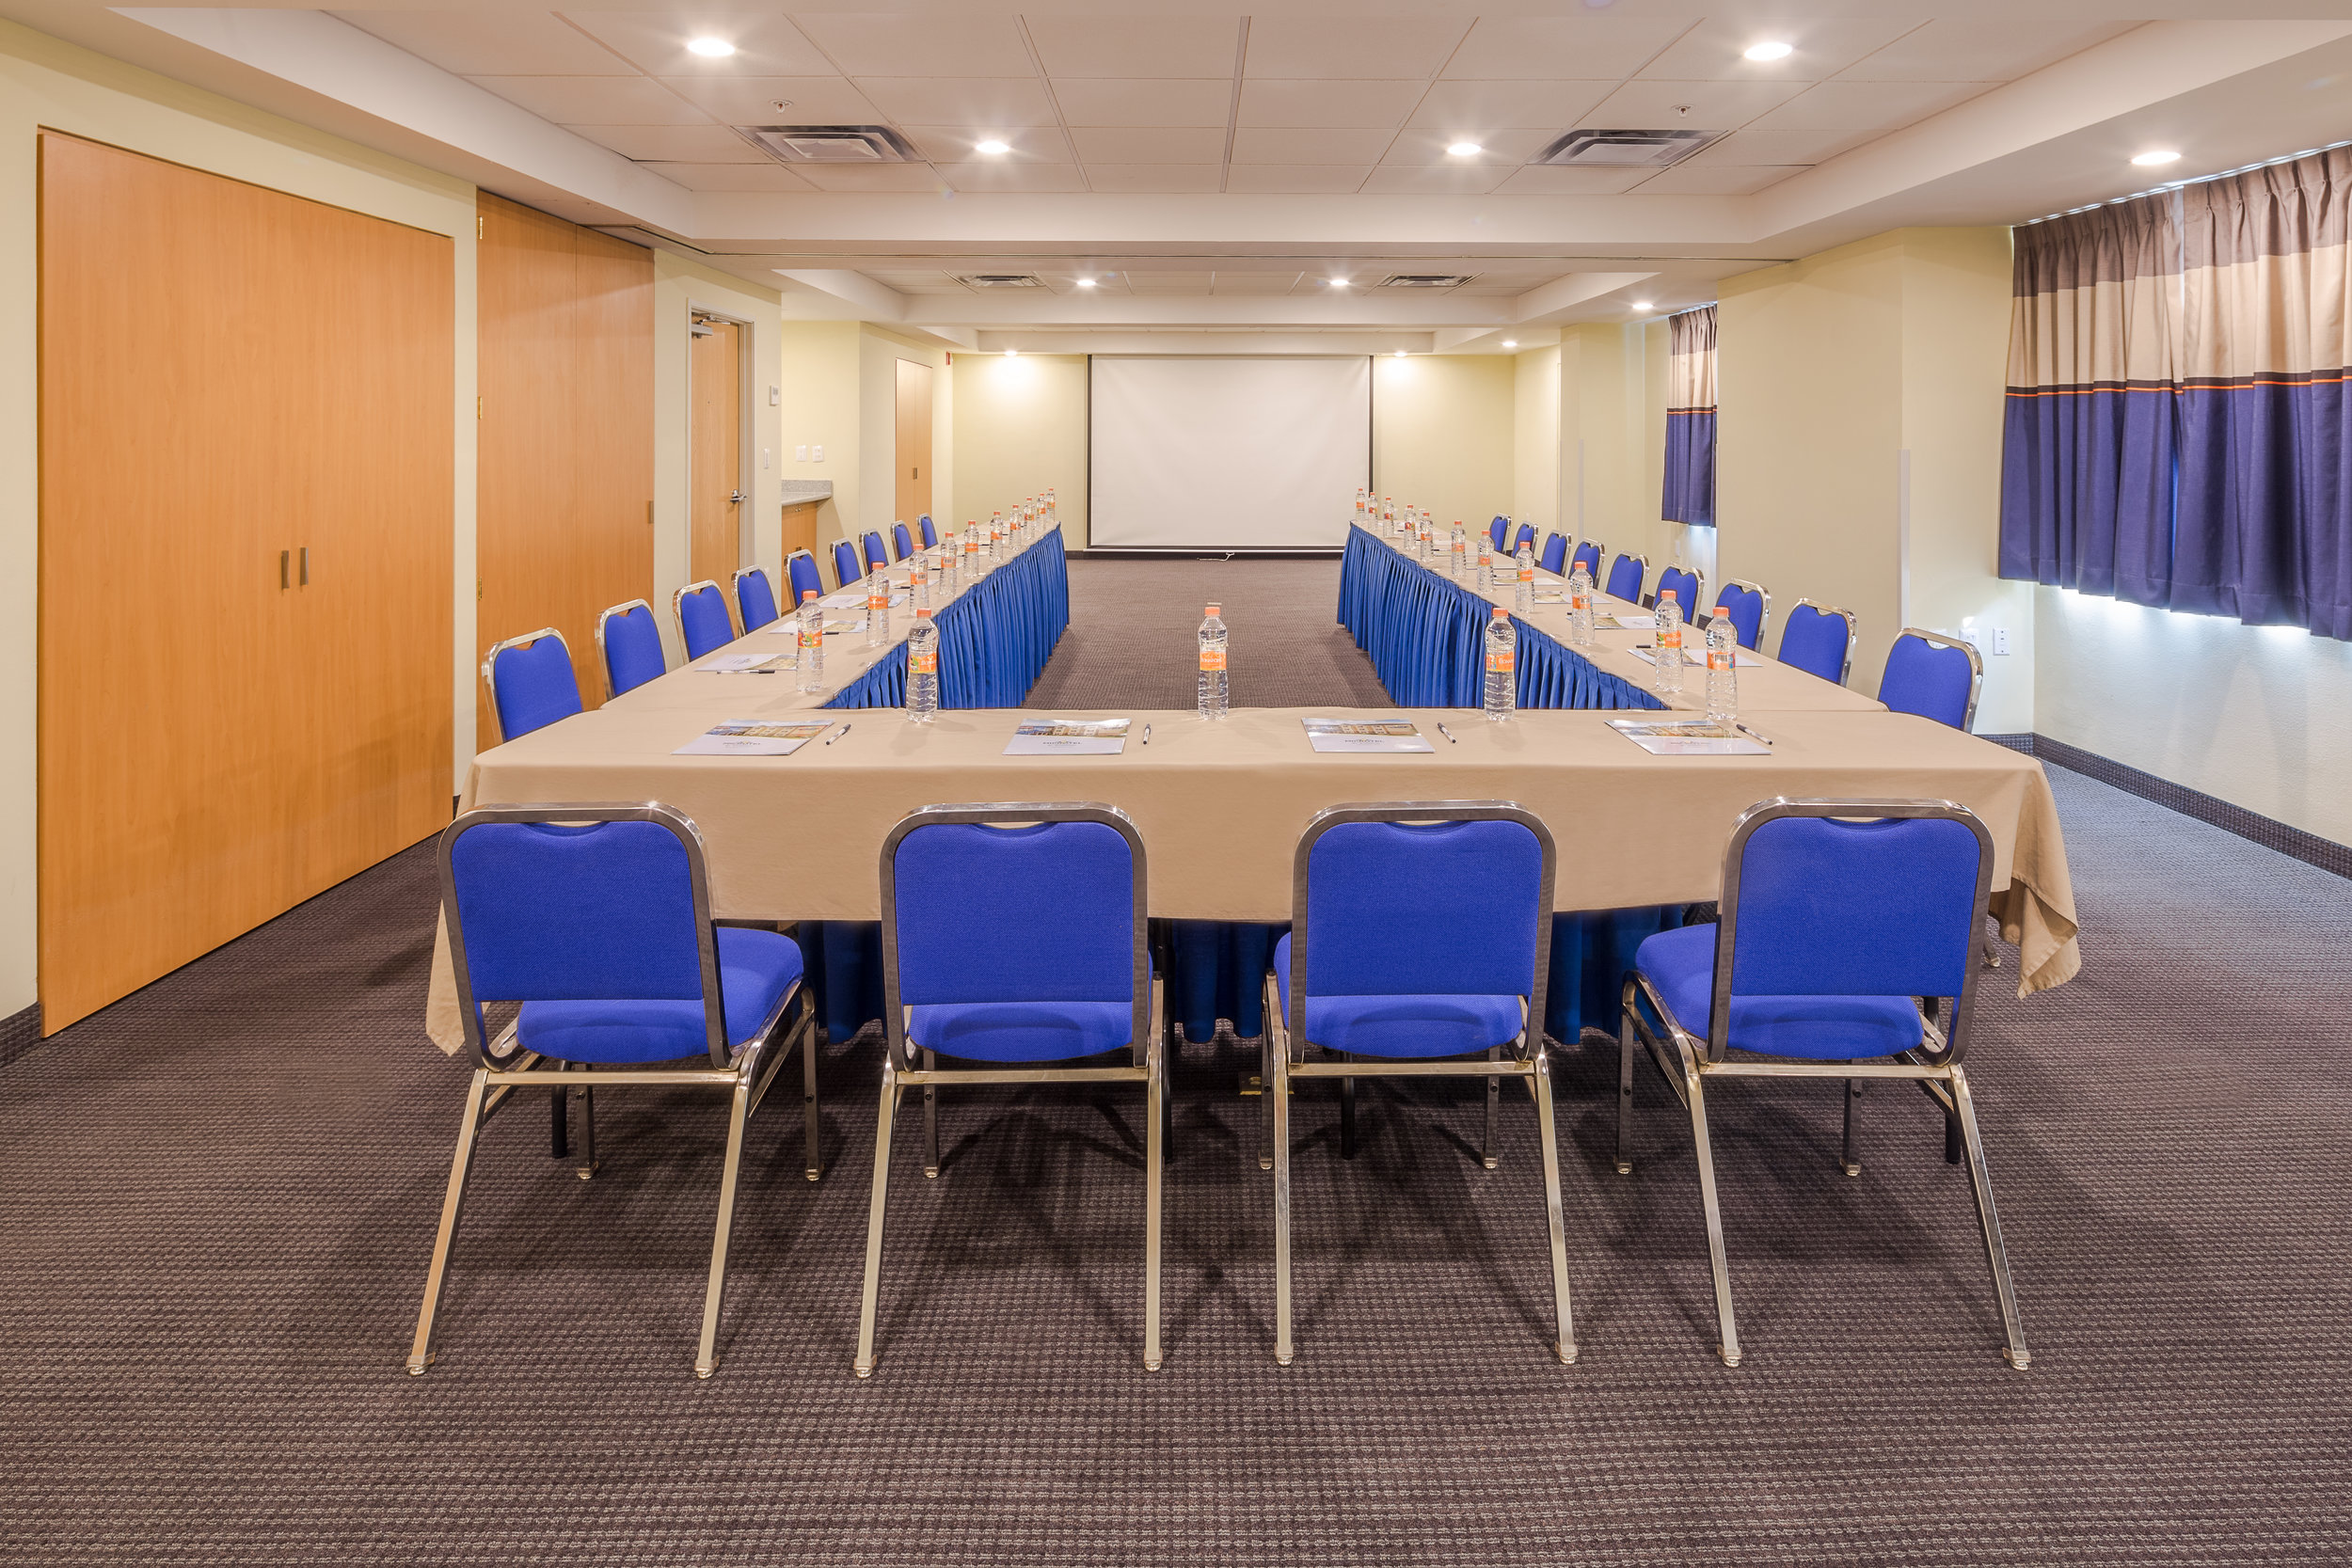 CULMI_Meeting Room_1_1.jpg